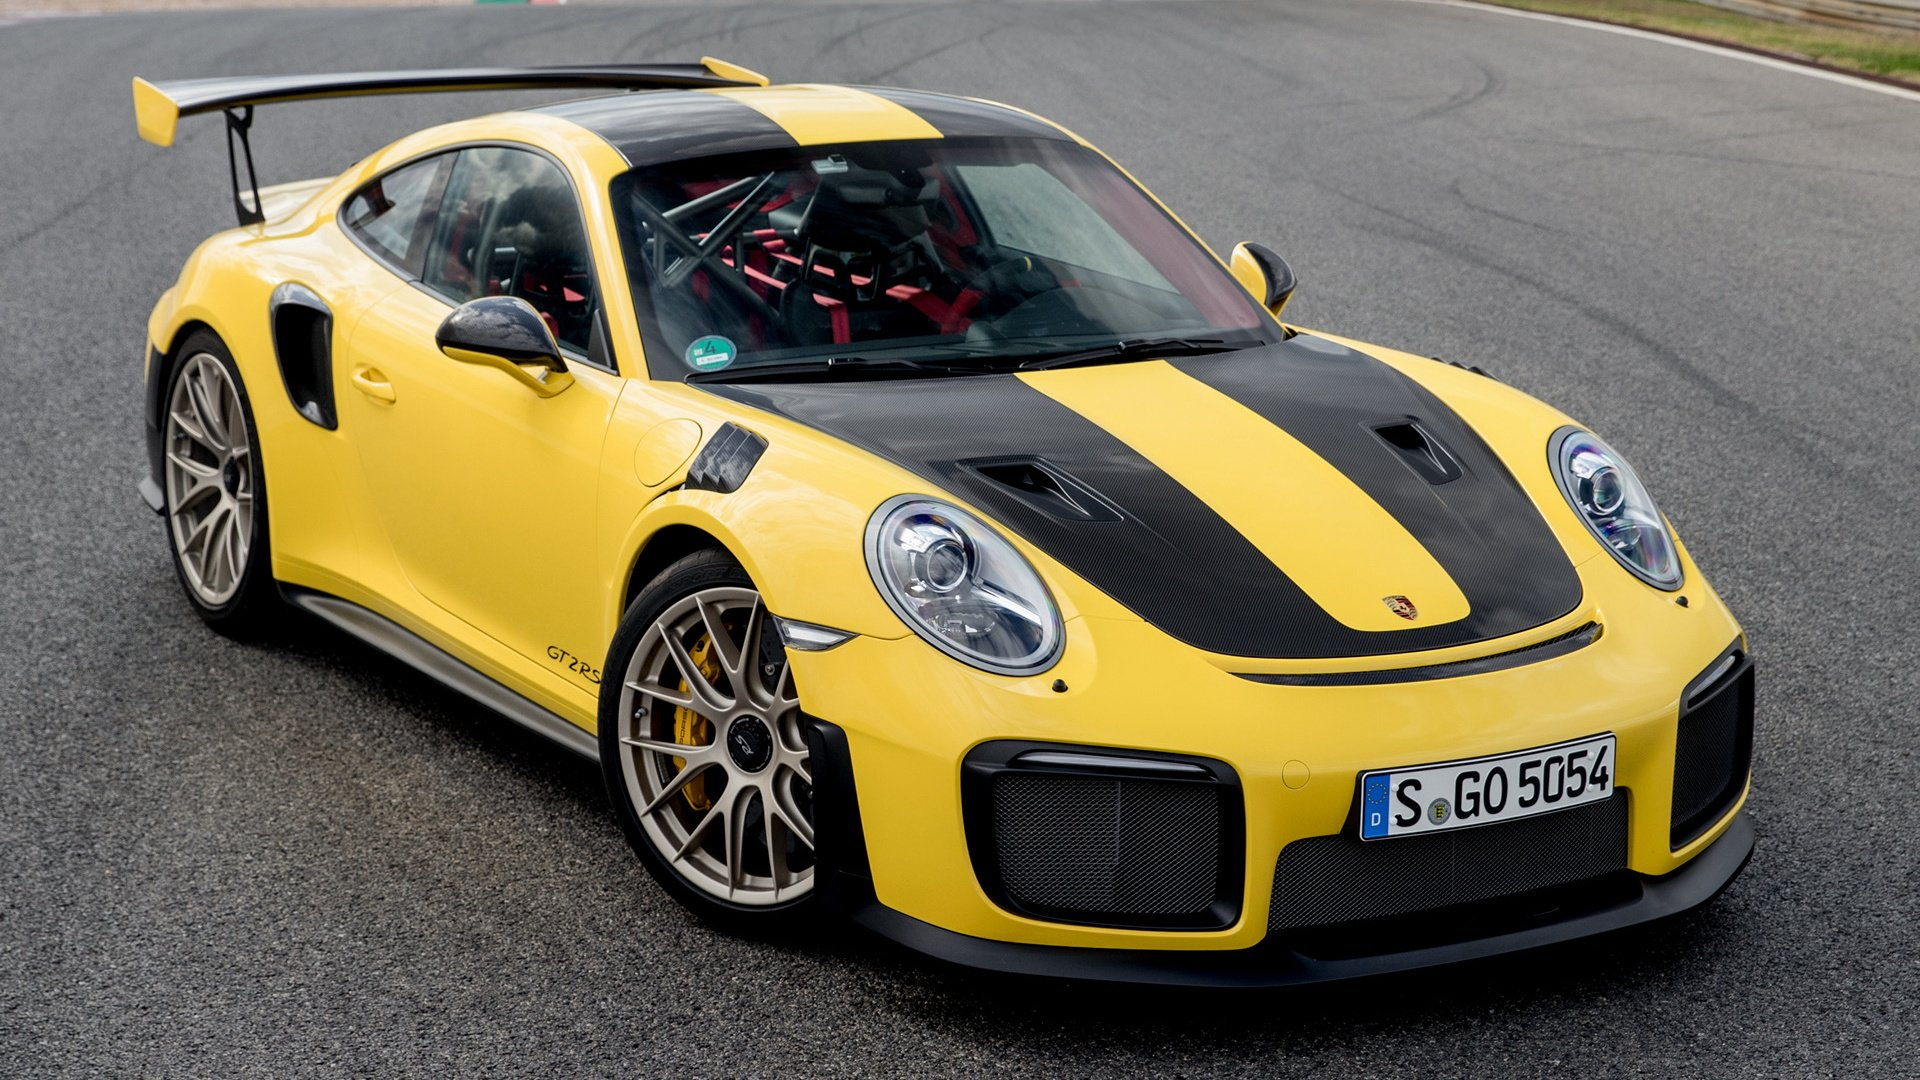 2017 Porsche 911 Gt2 Rs Hd Wallpaper Background Image 1920x1080 Id 882894 Wallpaper Abyss